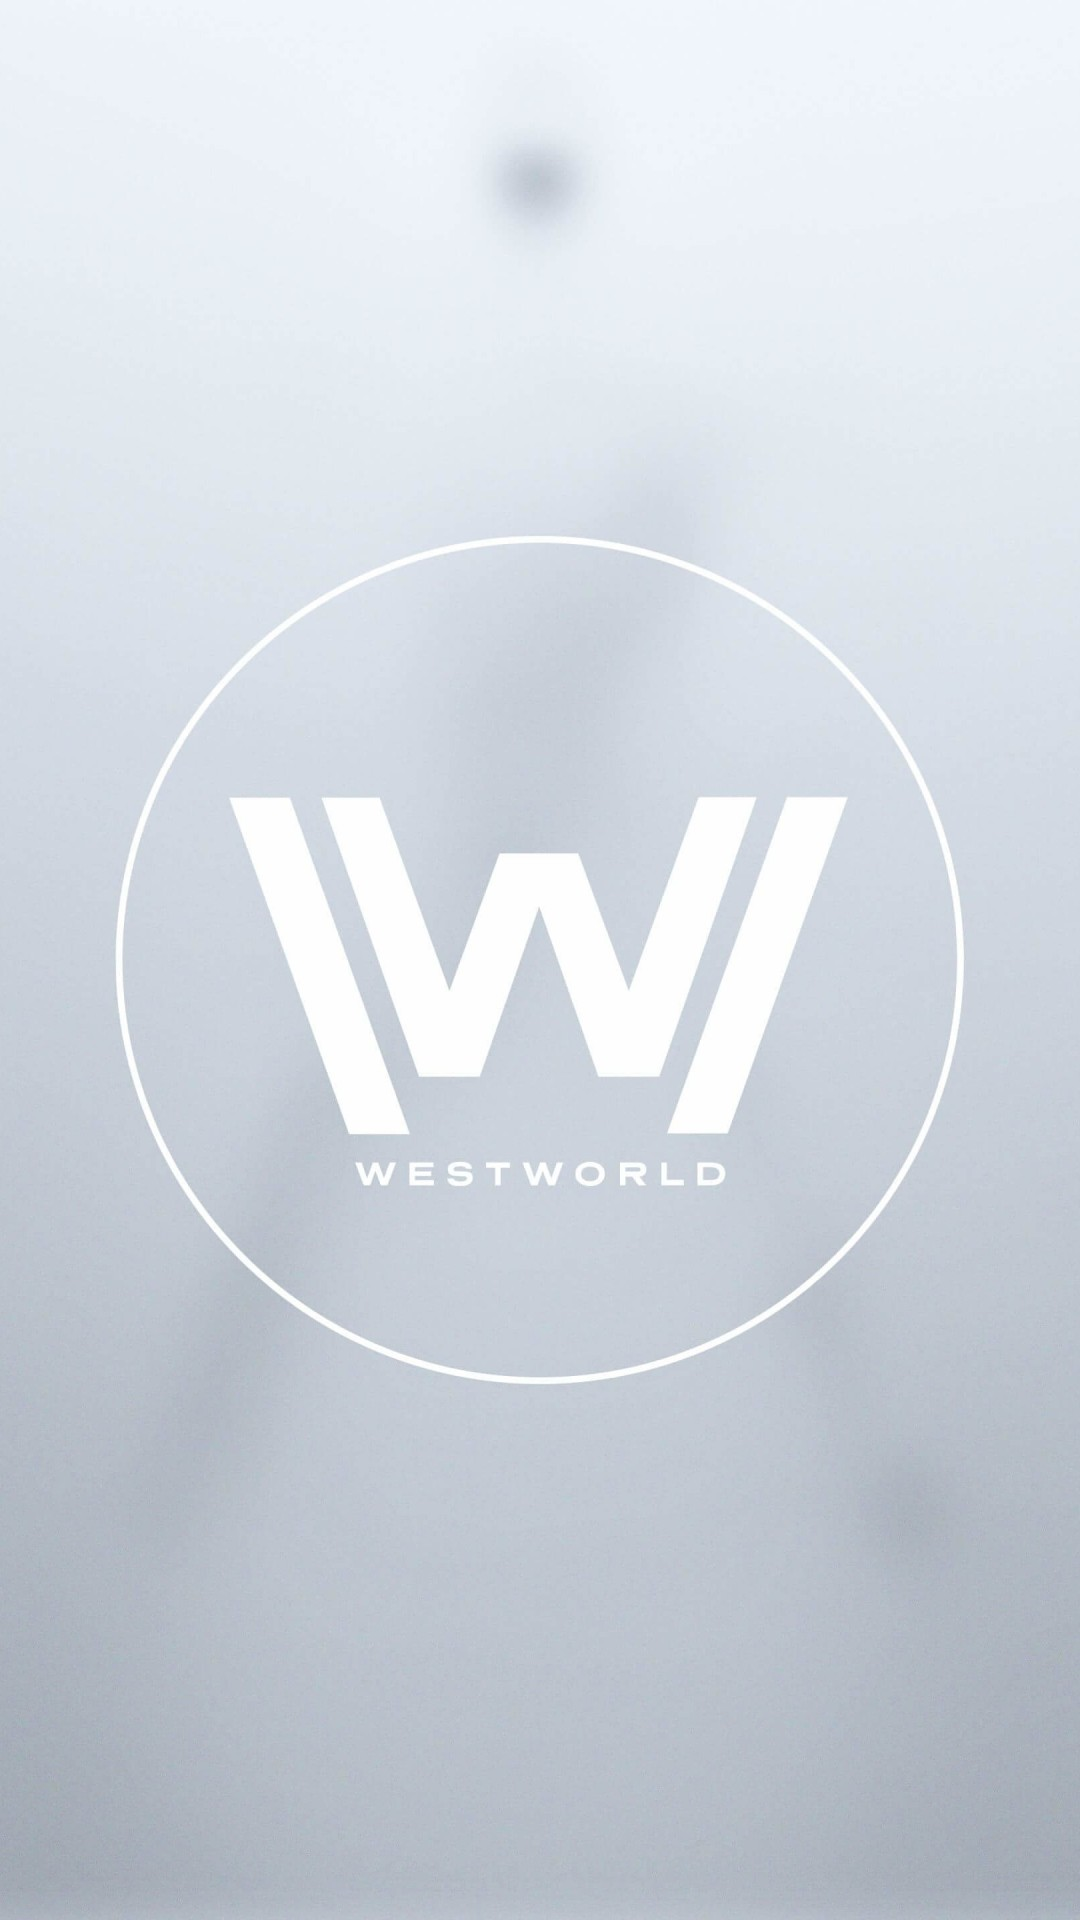 Westworld Logo Wallpaper for SONY Xperia Z2